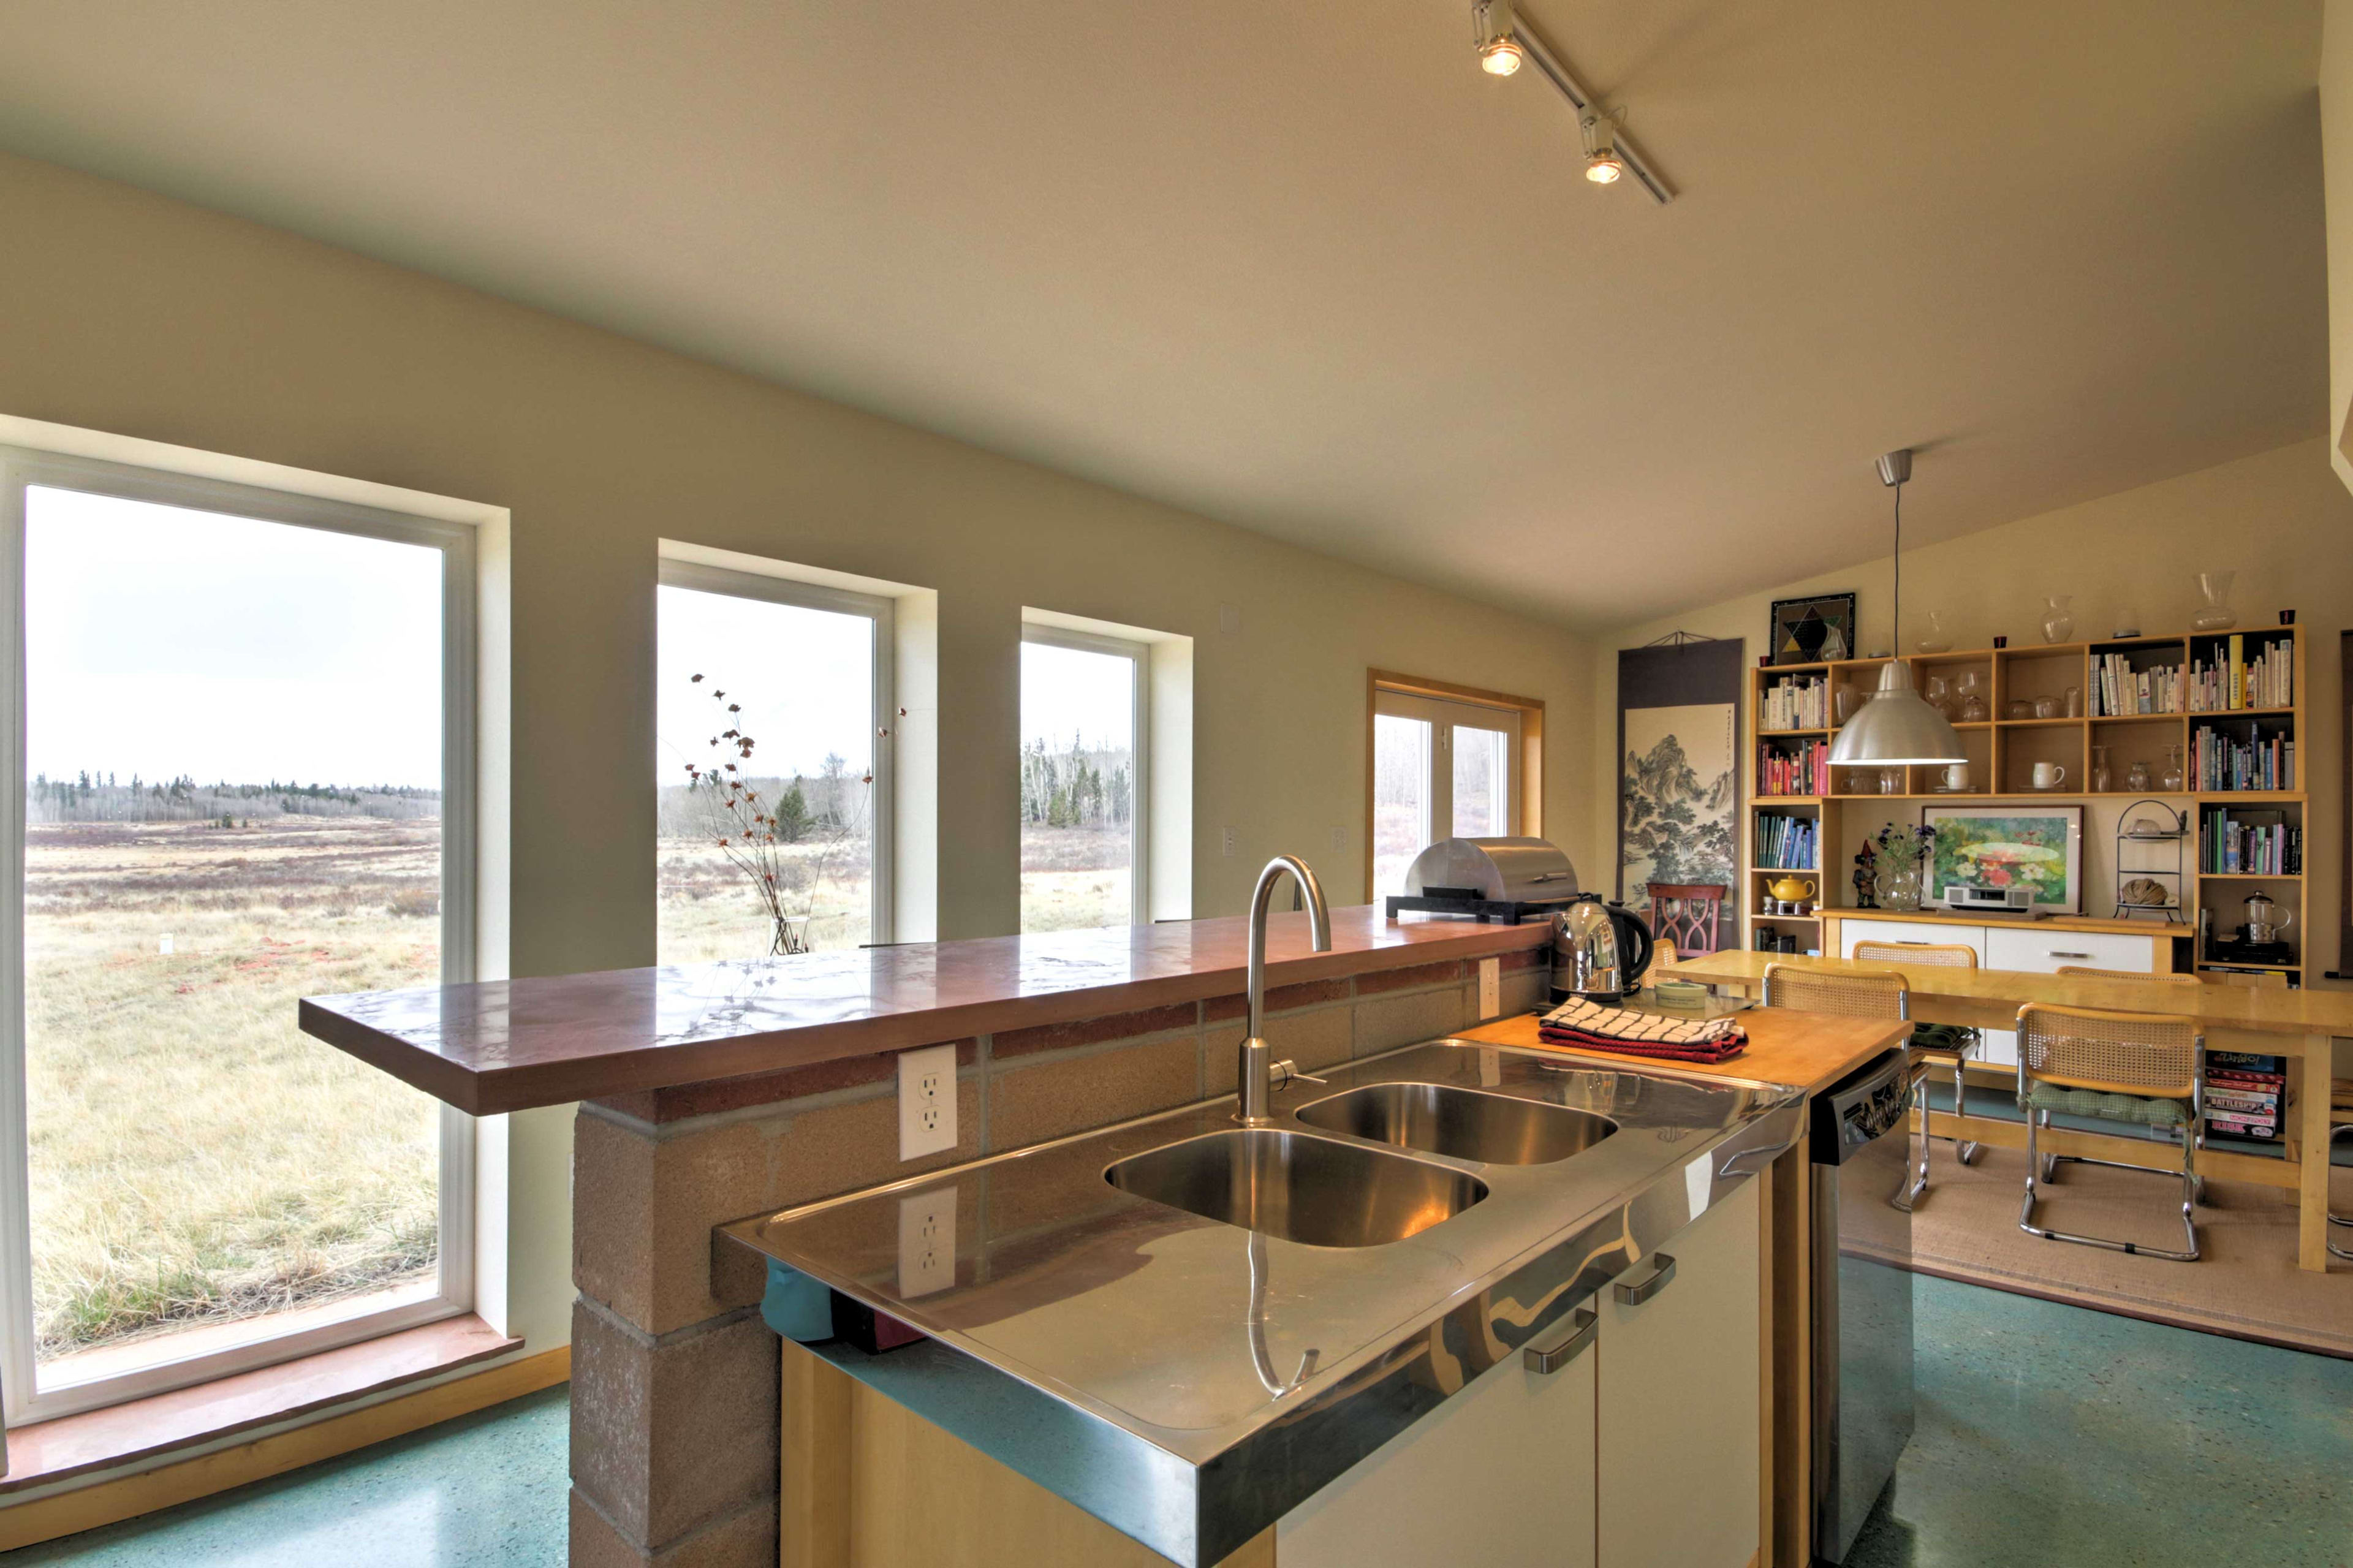 Large windows provide plenty of natural light & wonderful views of the meadow.